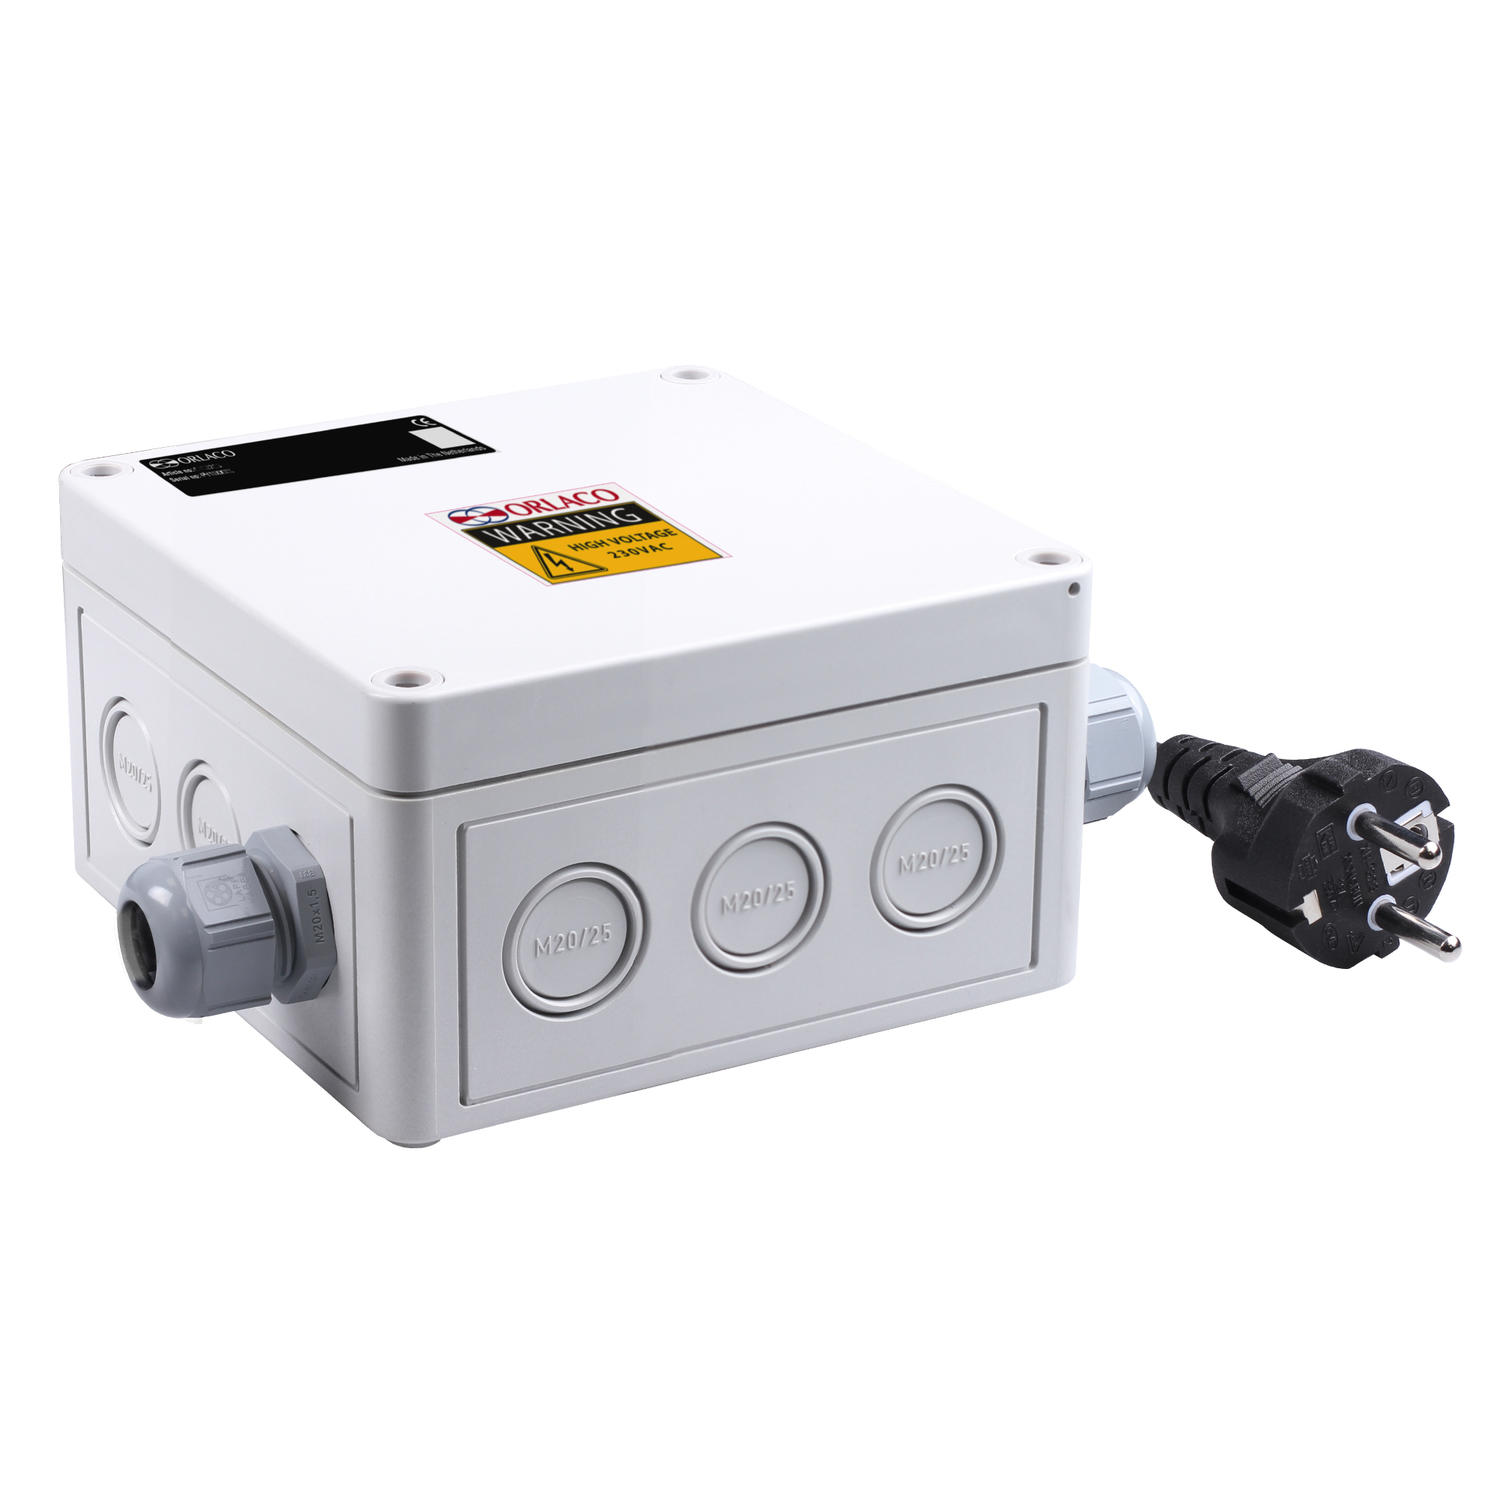 Junction box for IR cameras